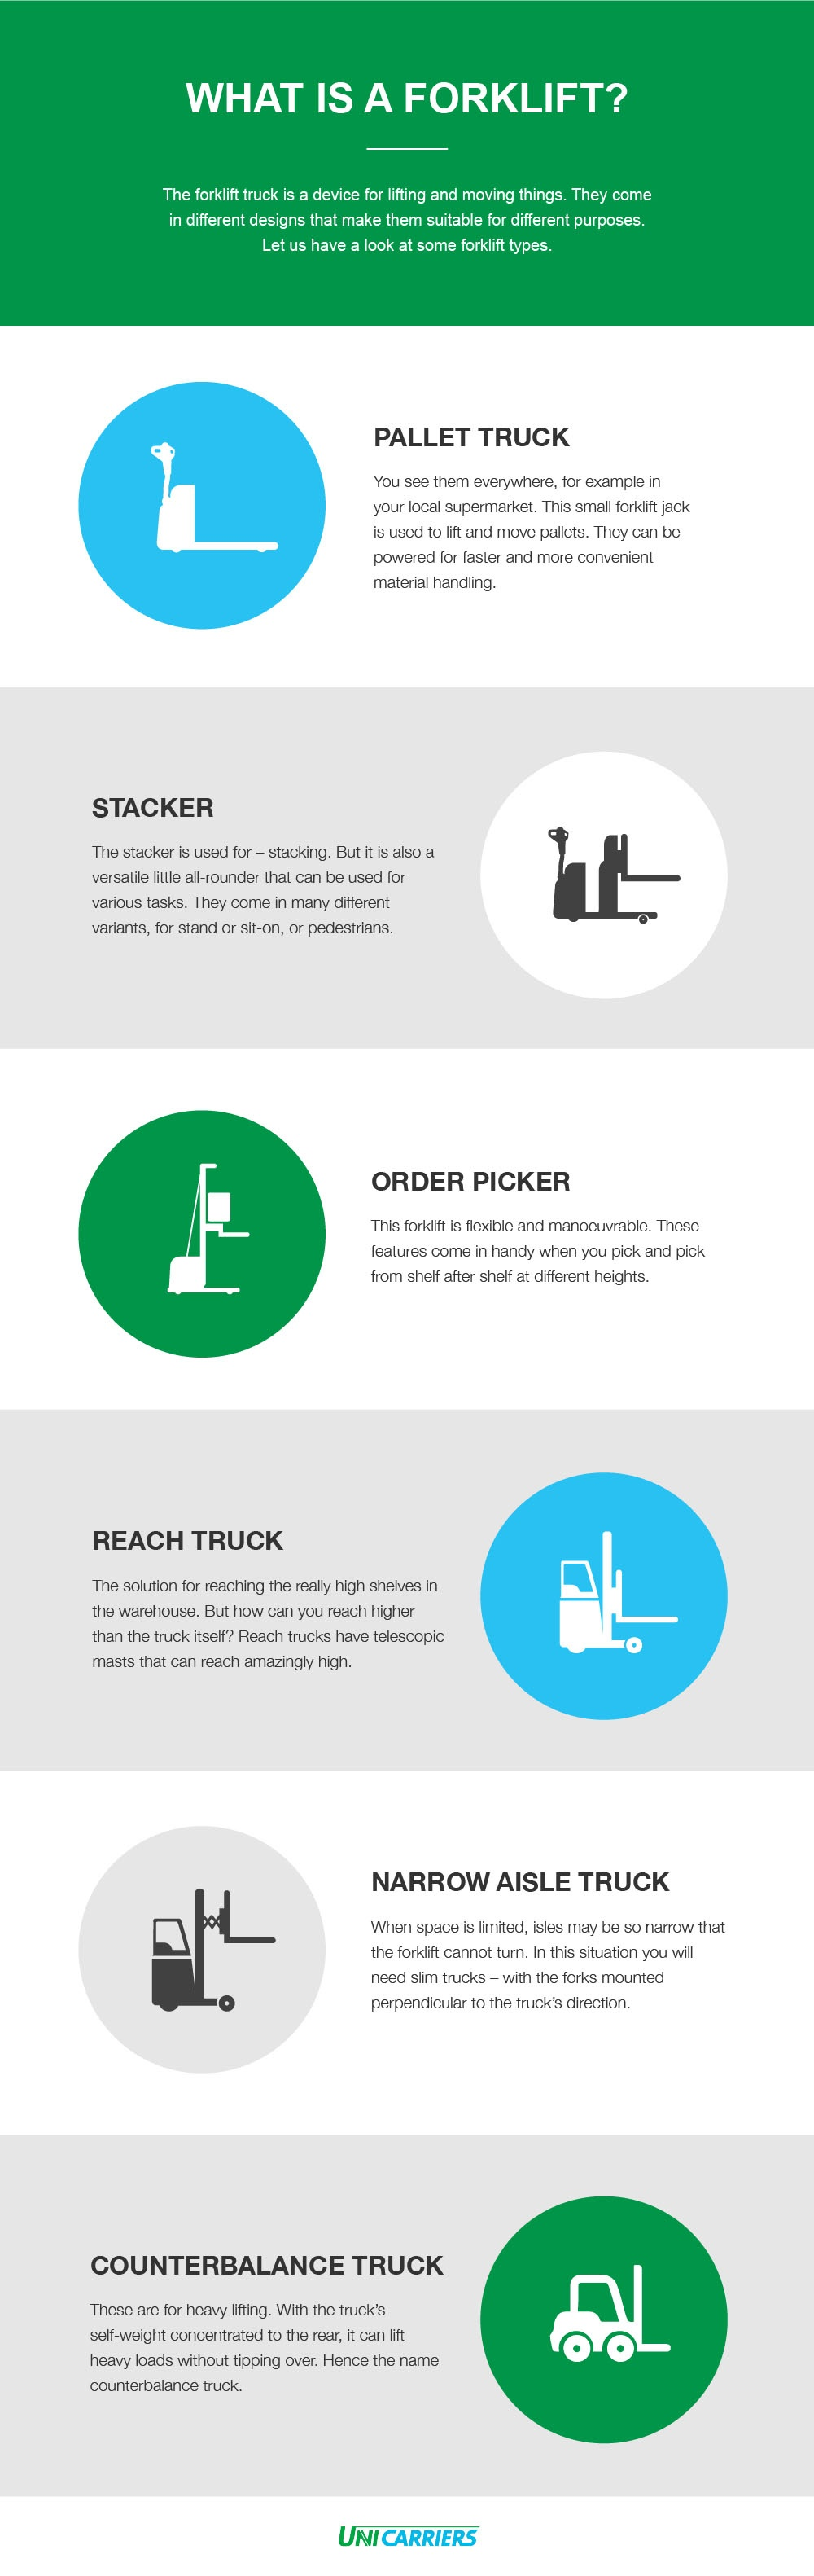 forklift_truck_unicarriers_infographic.jpg